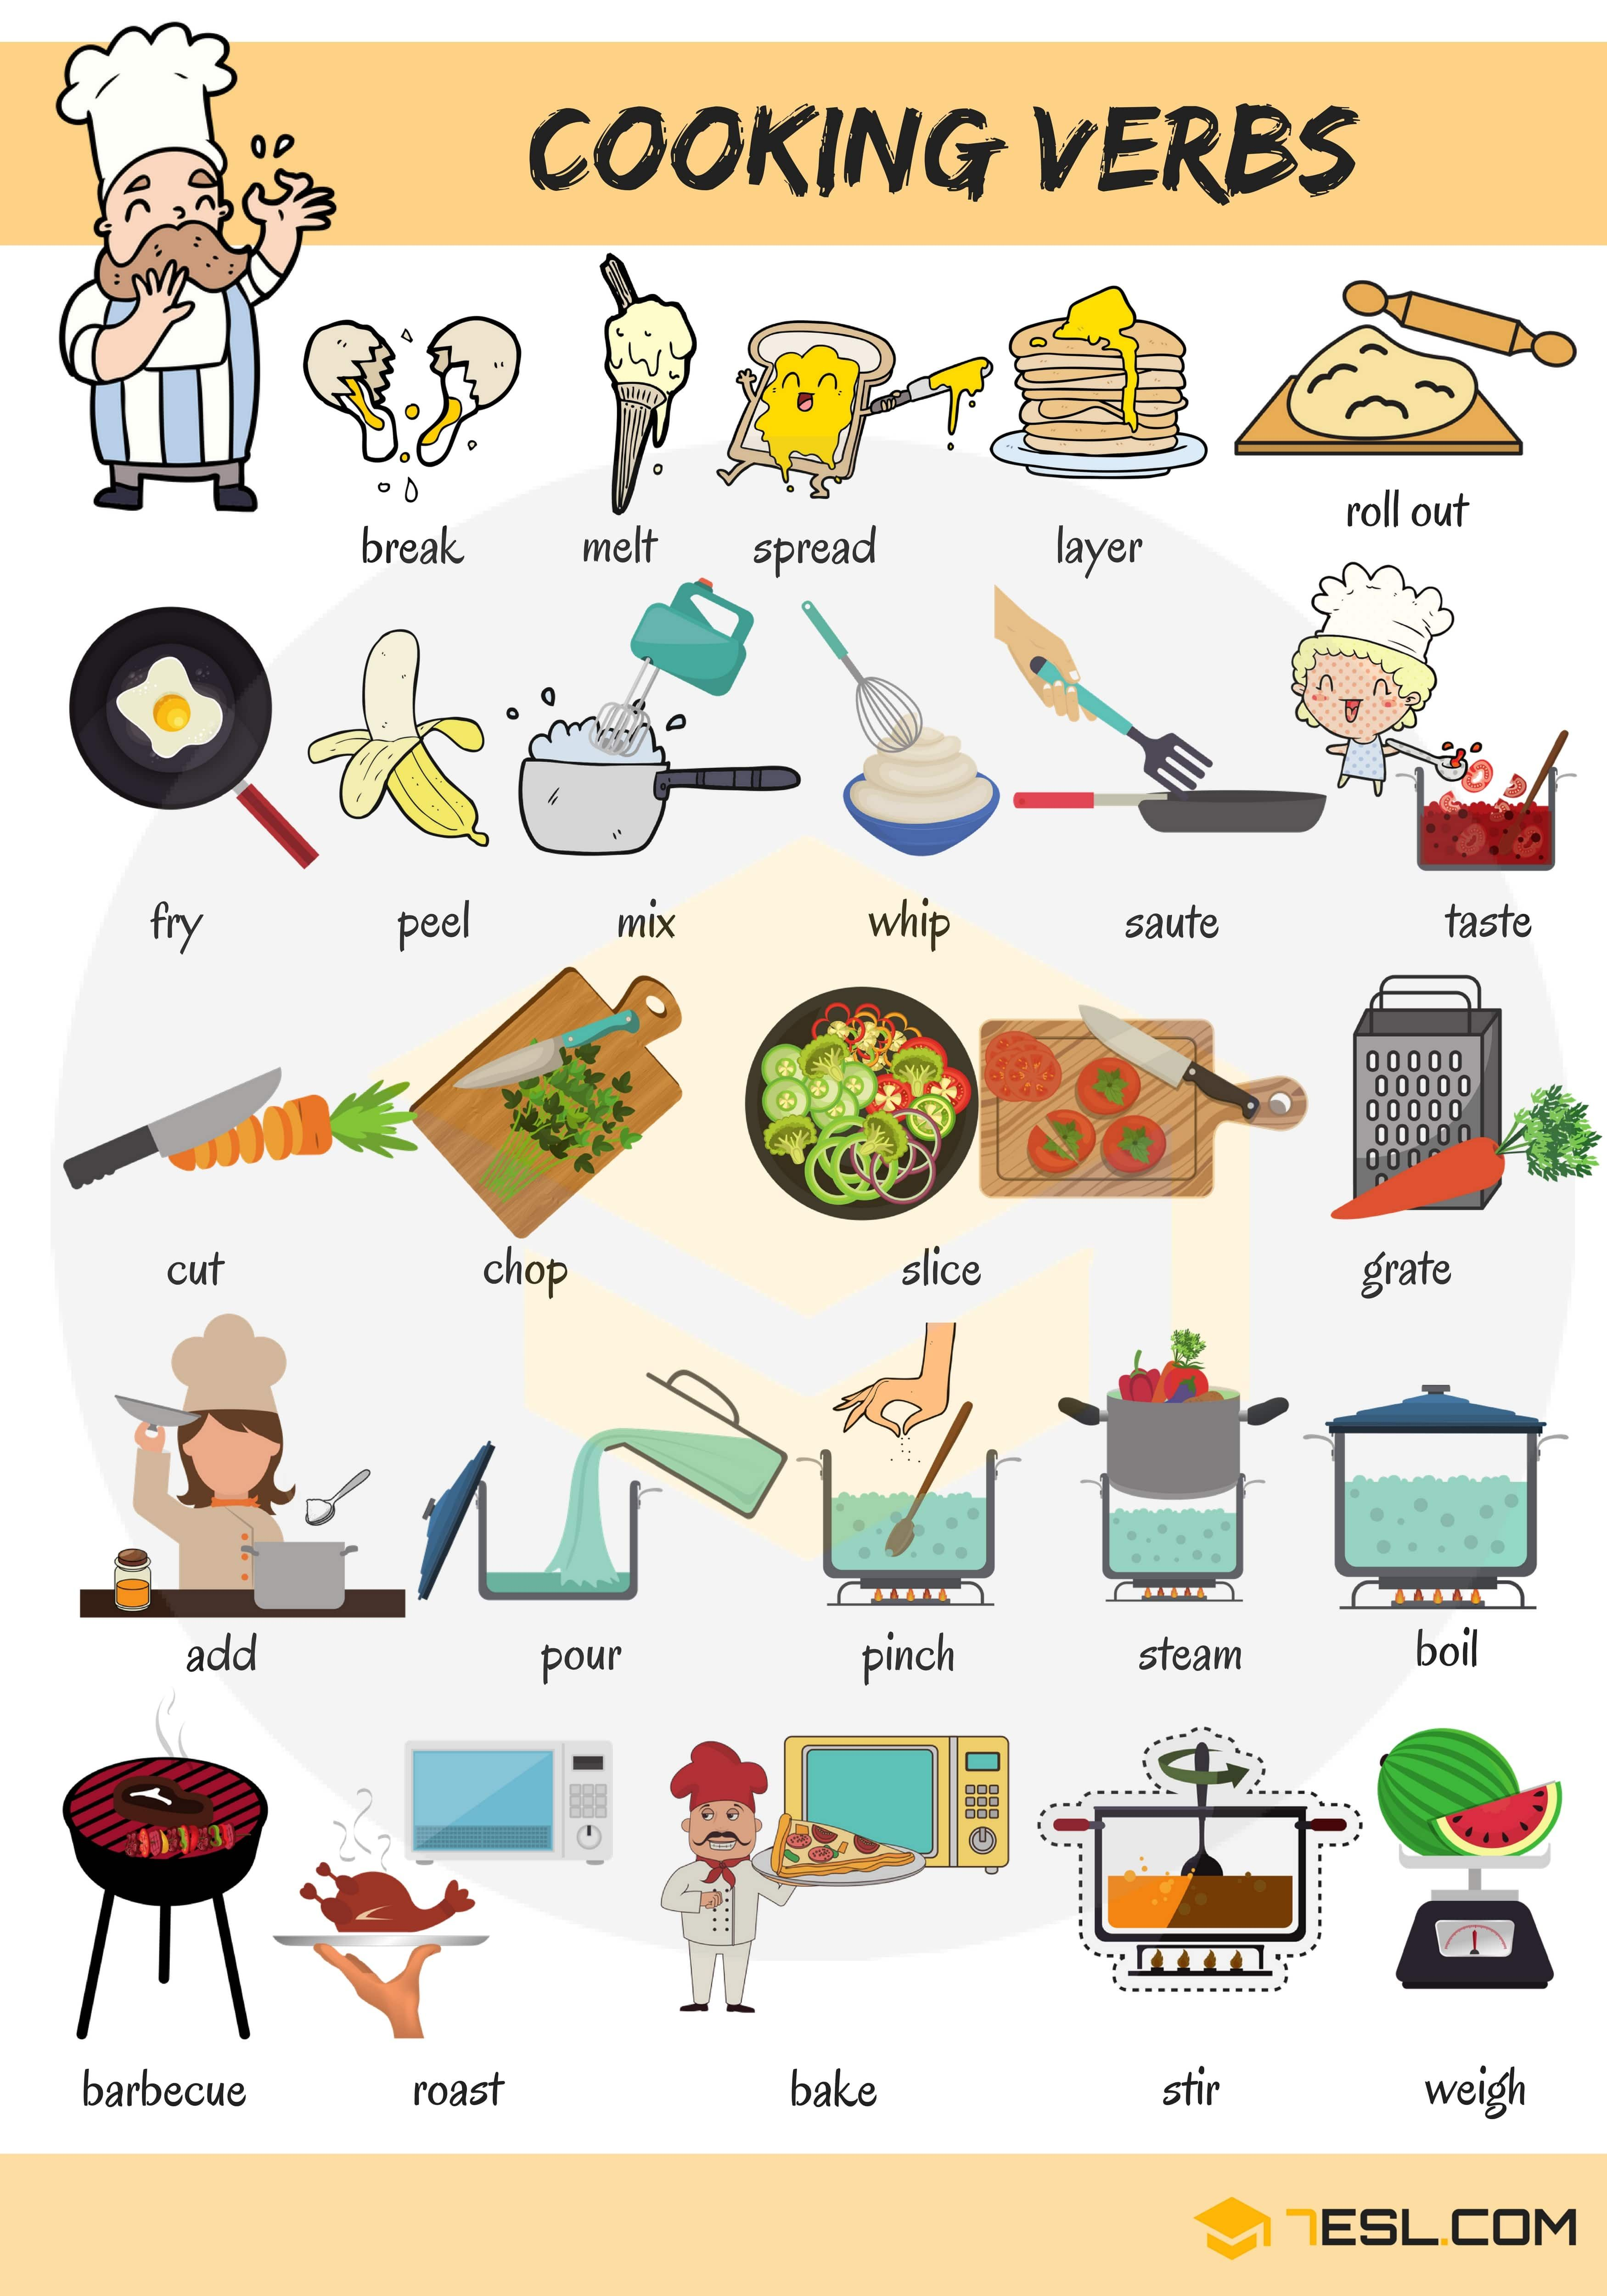 20 useful cooking verbs in english anglais langue et - Cuisiner traduction anglais ...